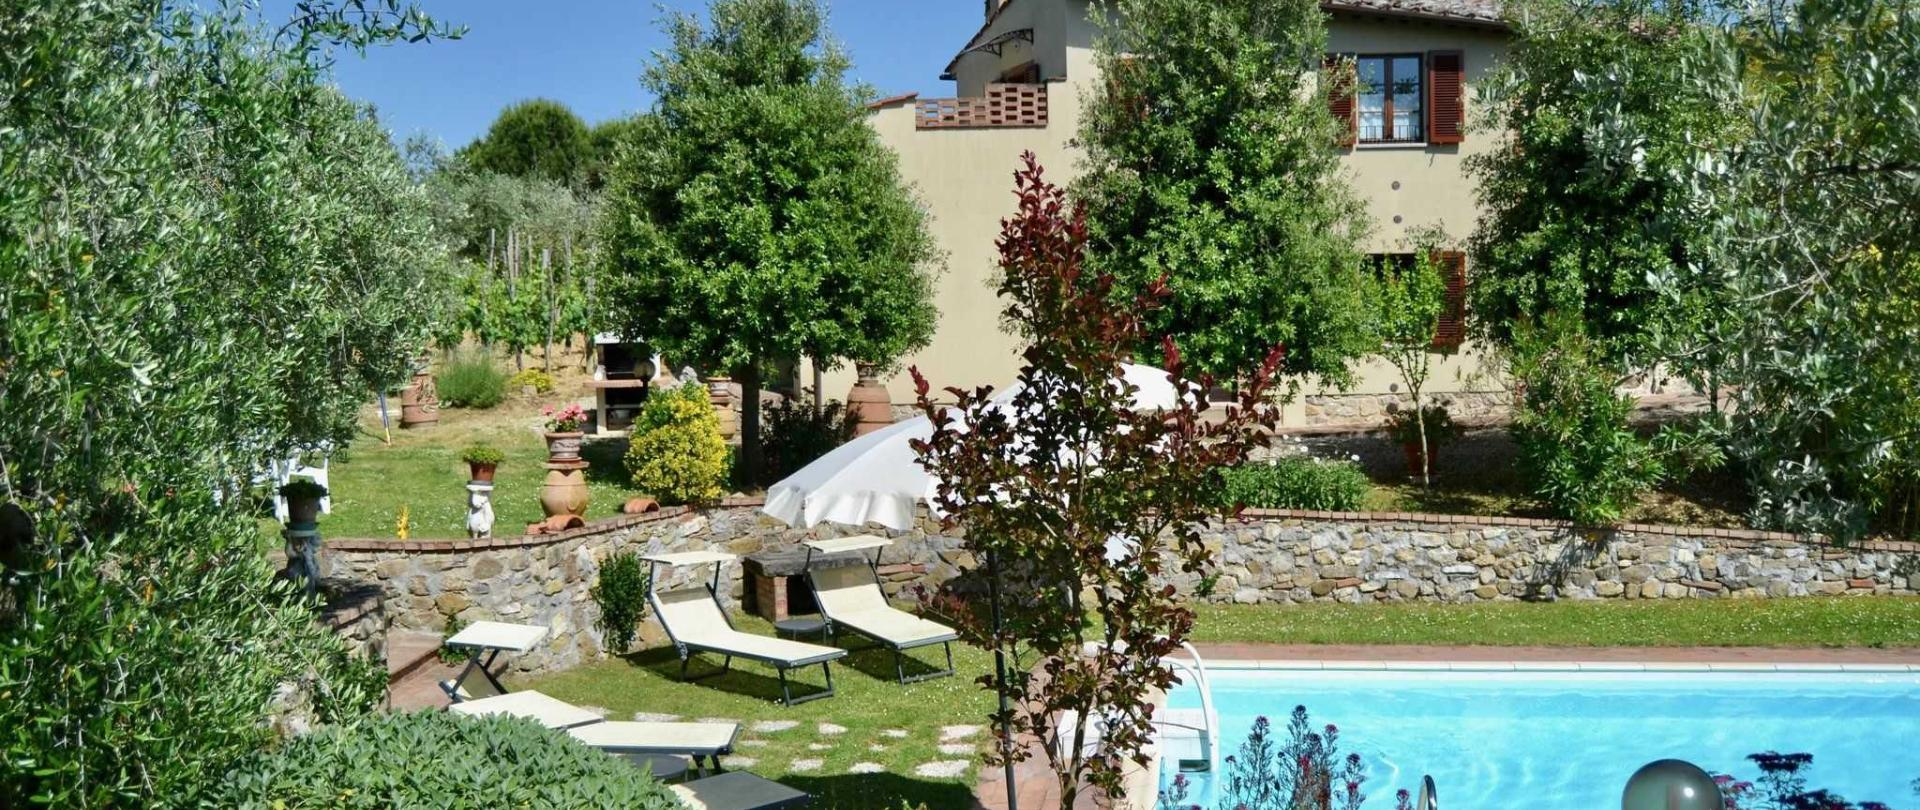 outdoor-pool-garden.jpg